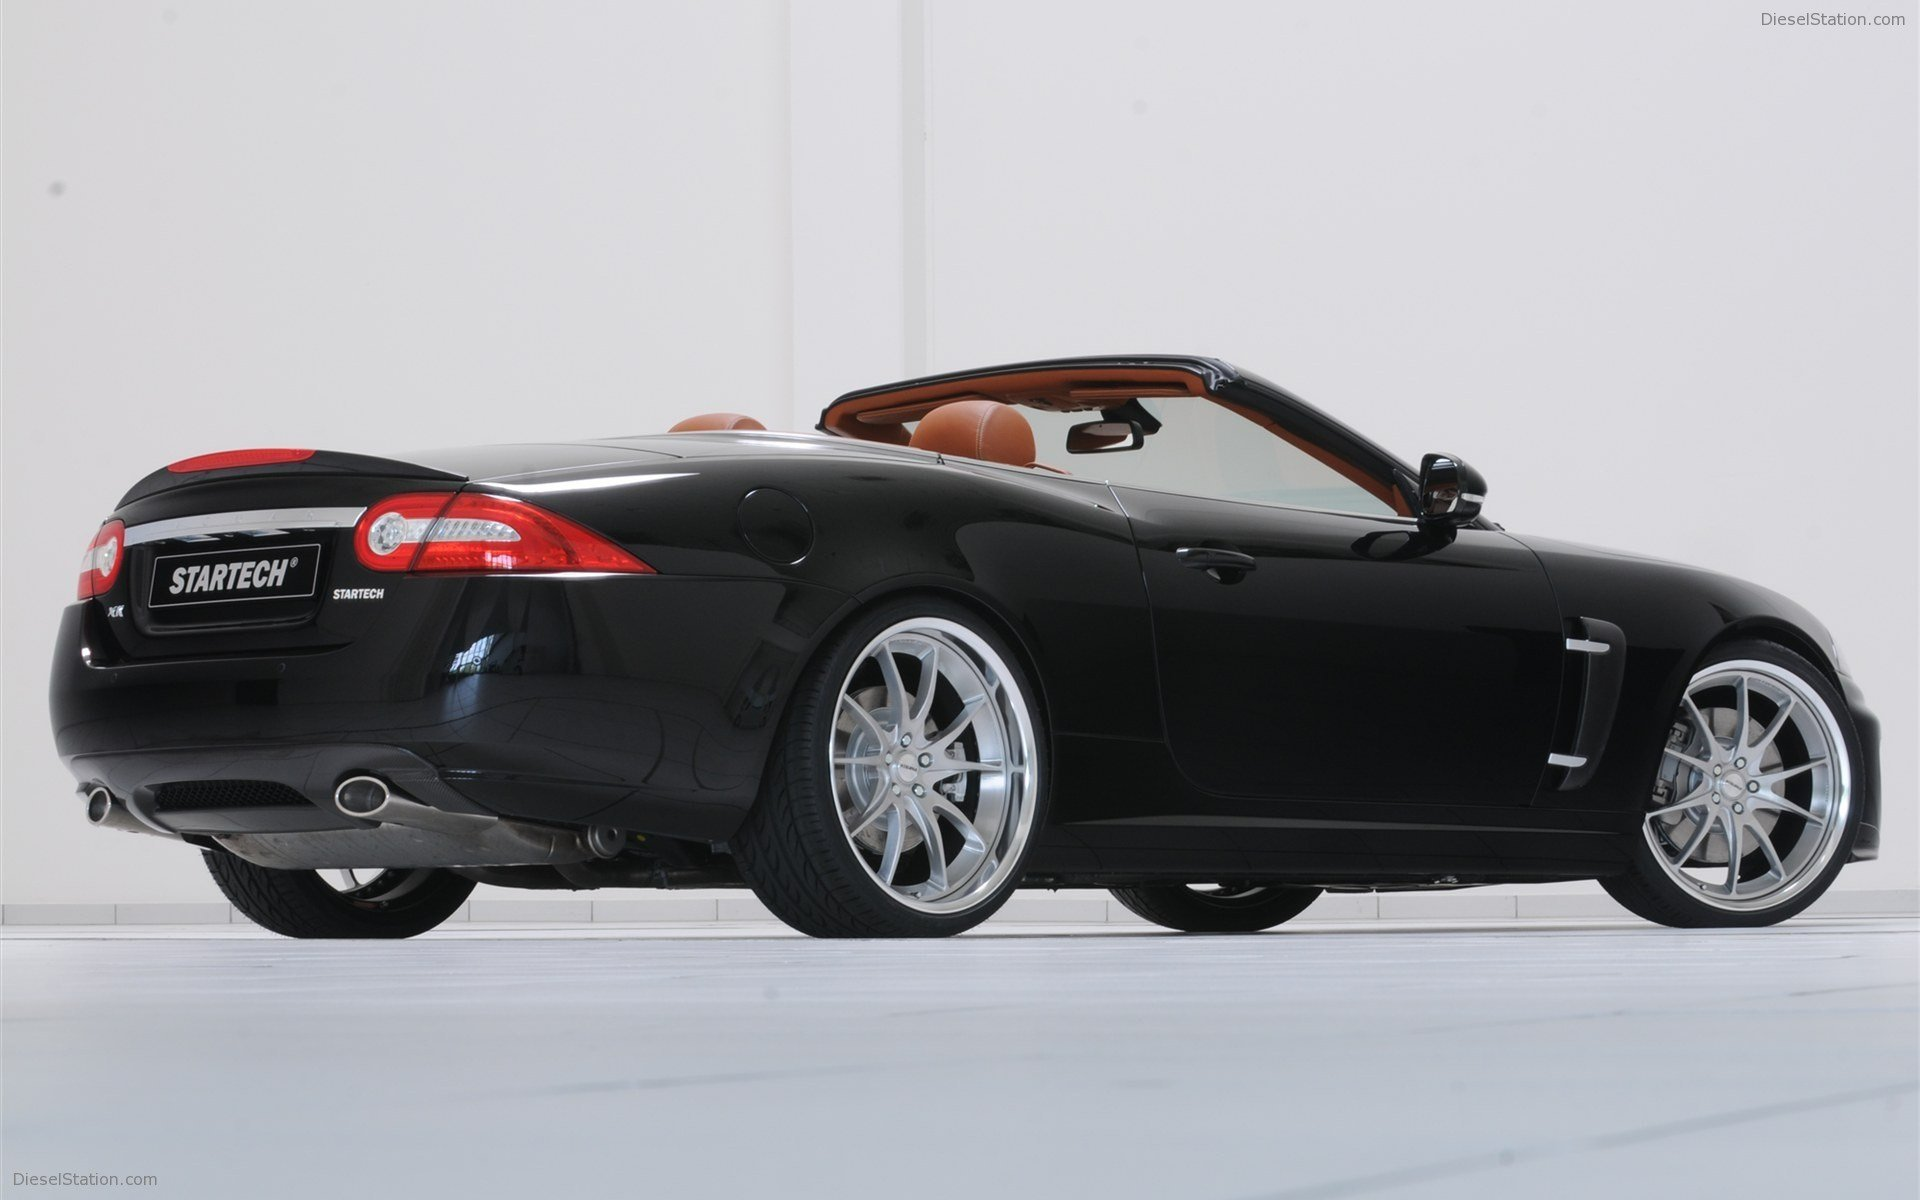 New Startech Jaguar Xk Xkr 2010 Widescreen Exotic Car On This Month